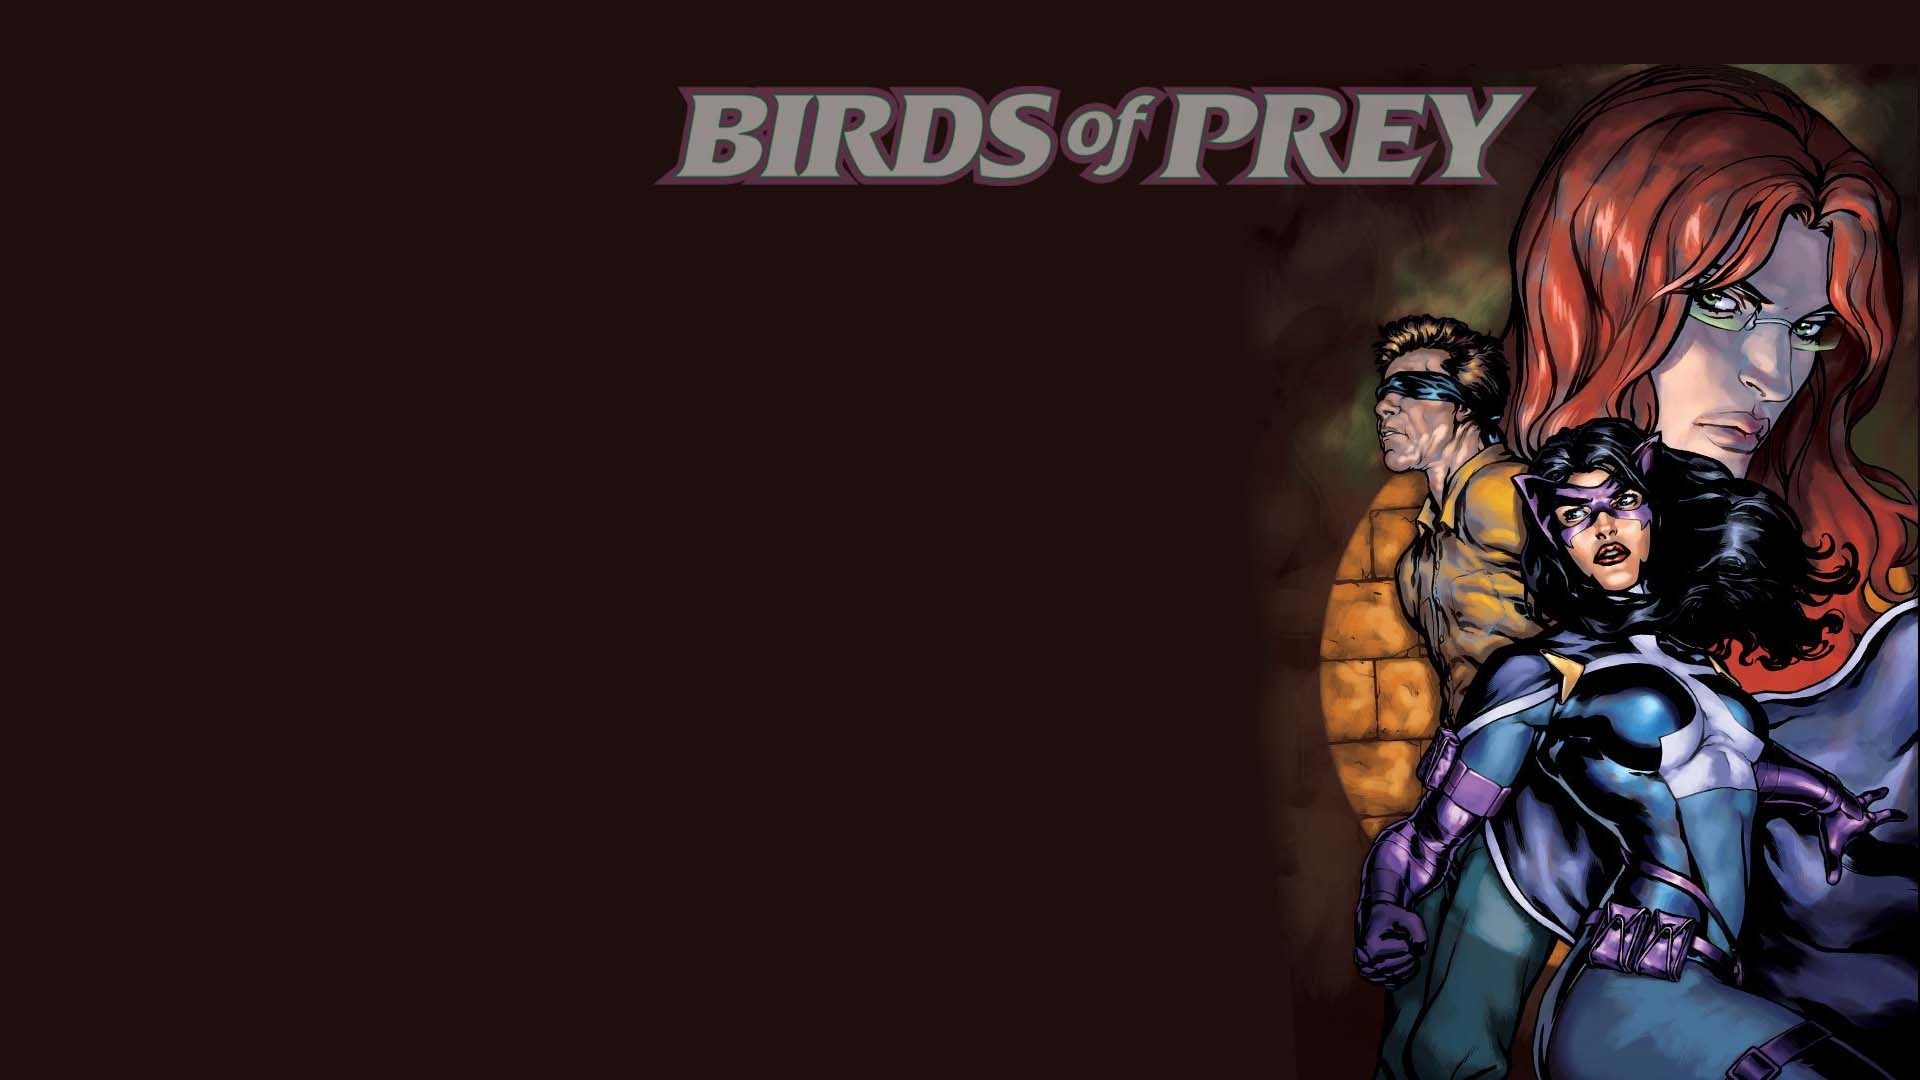 Birds of prey hd wallpaper background image 1920x1080 - Birds of prey wallpaper hd ...